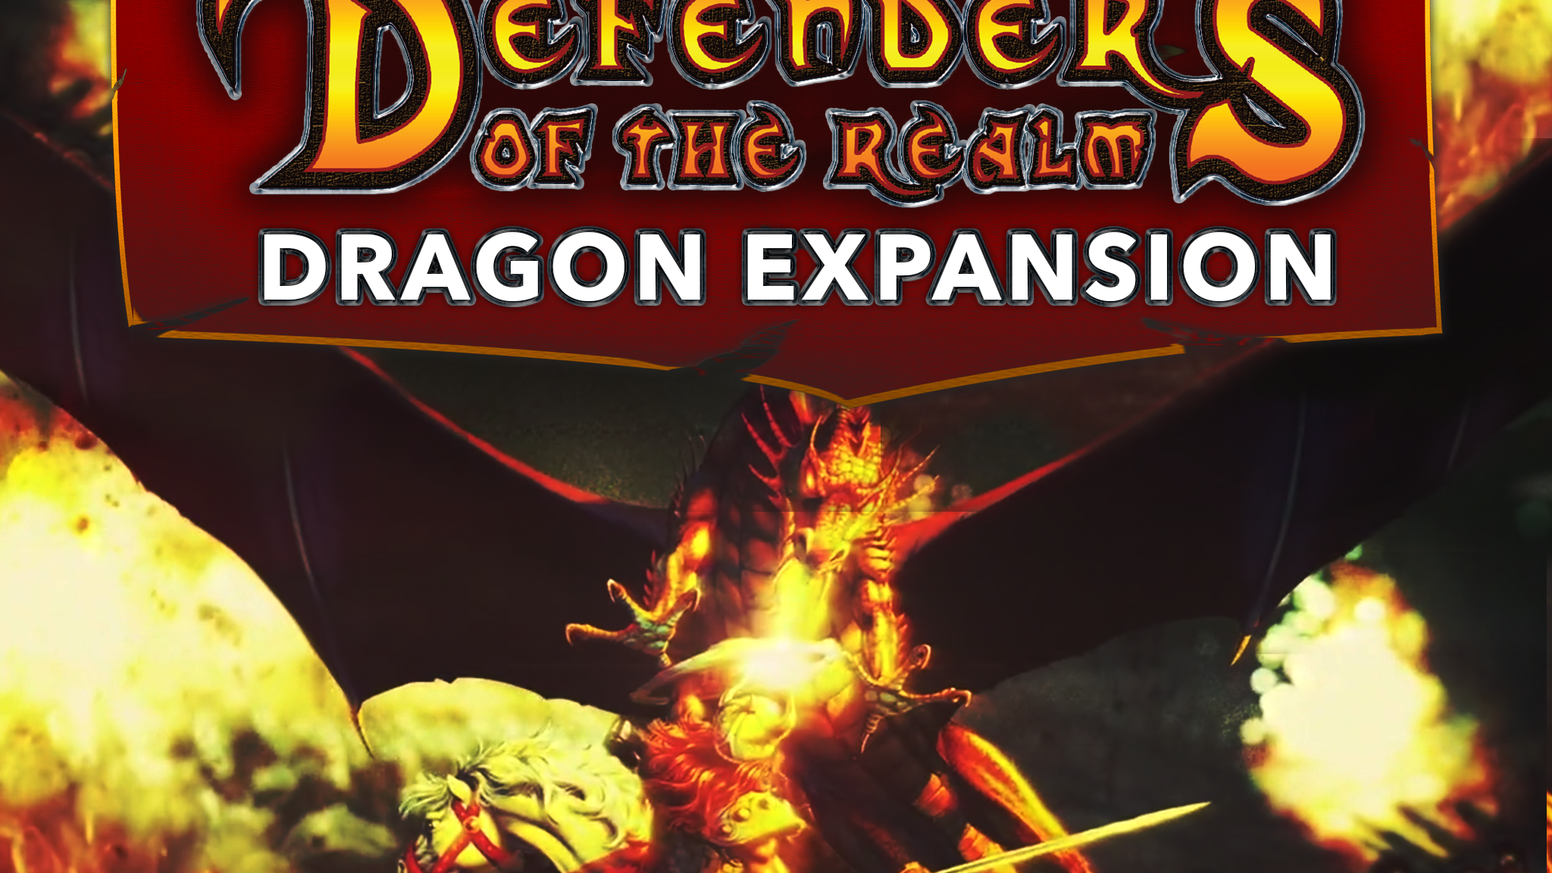 7 New Dragon Generals & Dark Agents, New Art & Rules are in this 2nd Edition Expansion of DOTR--the classic Co-Op Fantasy/Strategy Game